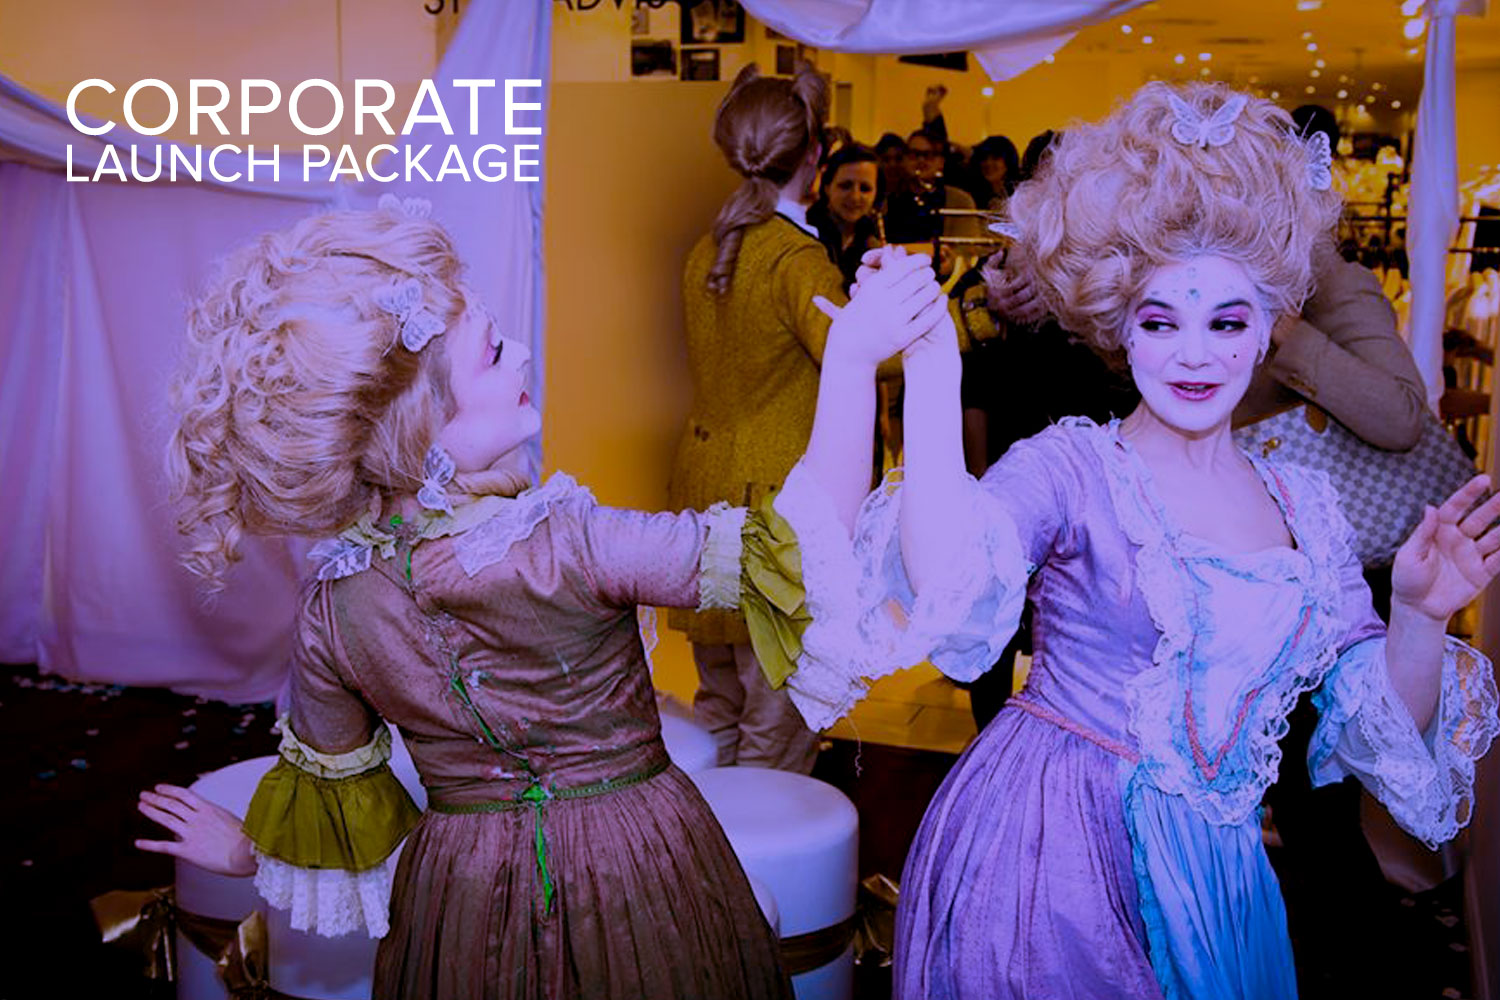 Corporate Launch Package